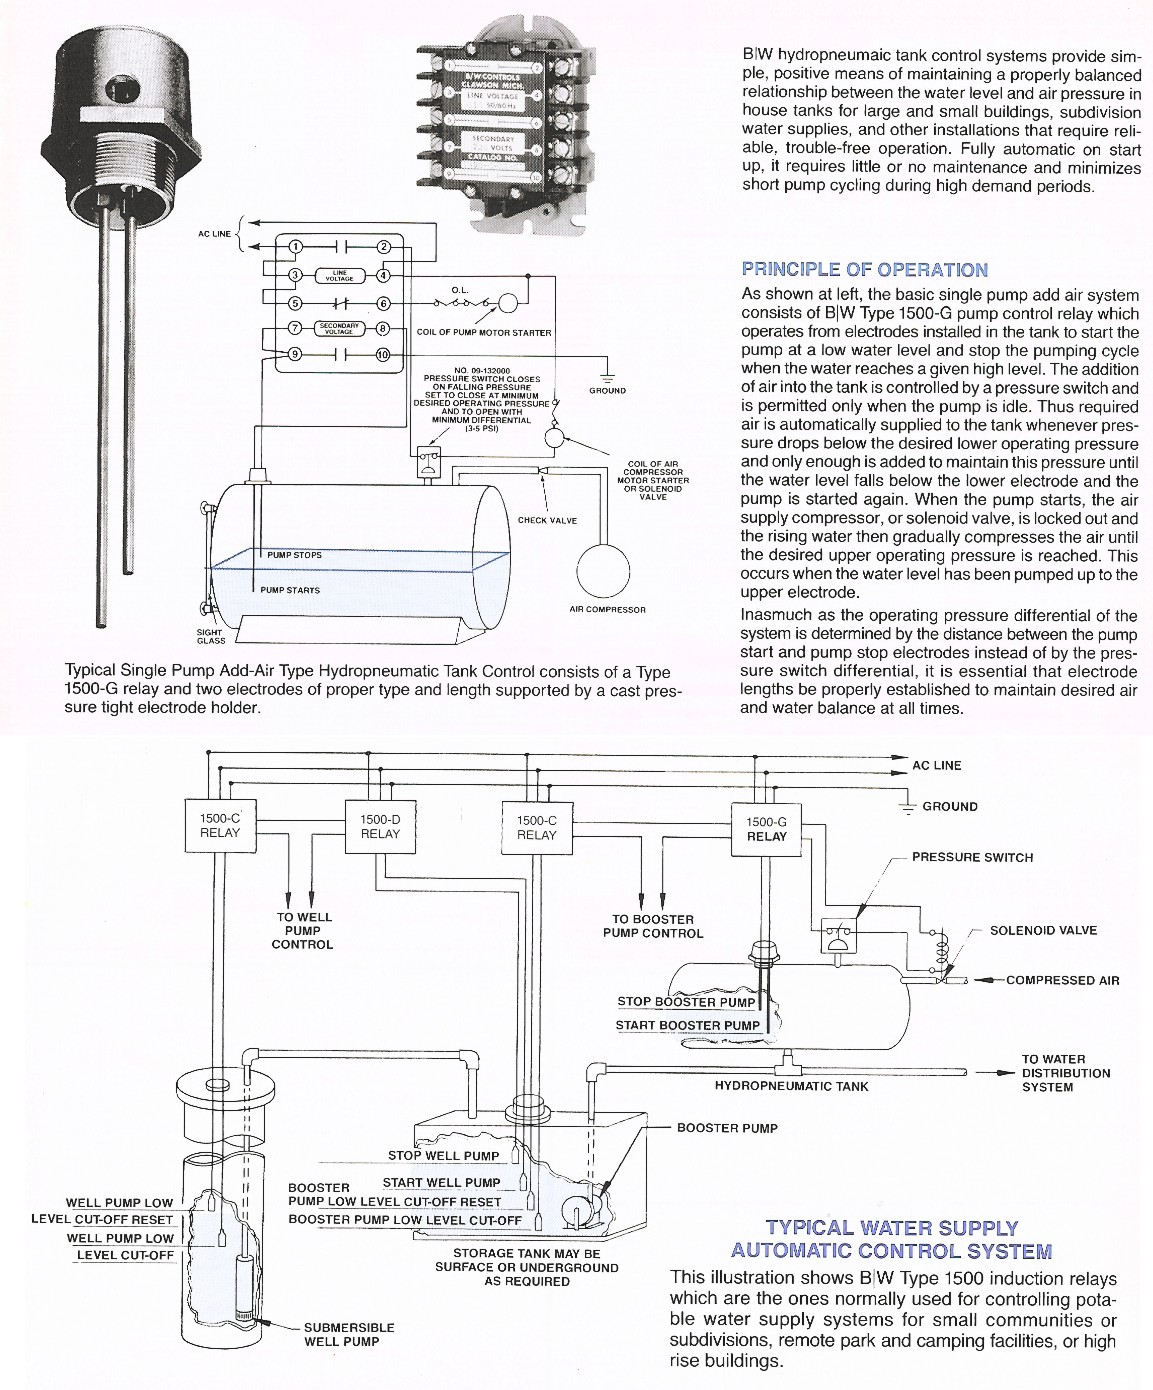 hight resolution of typical water supply automatic control system